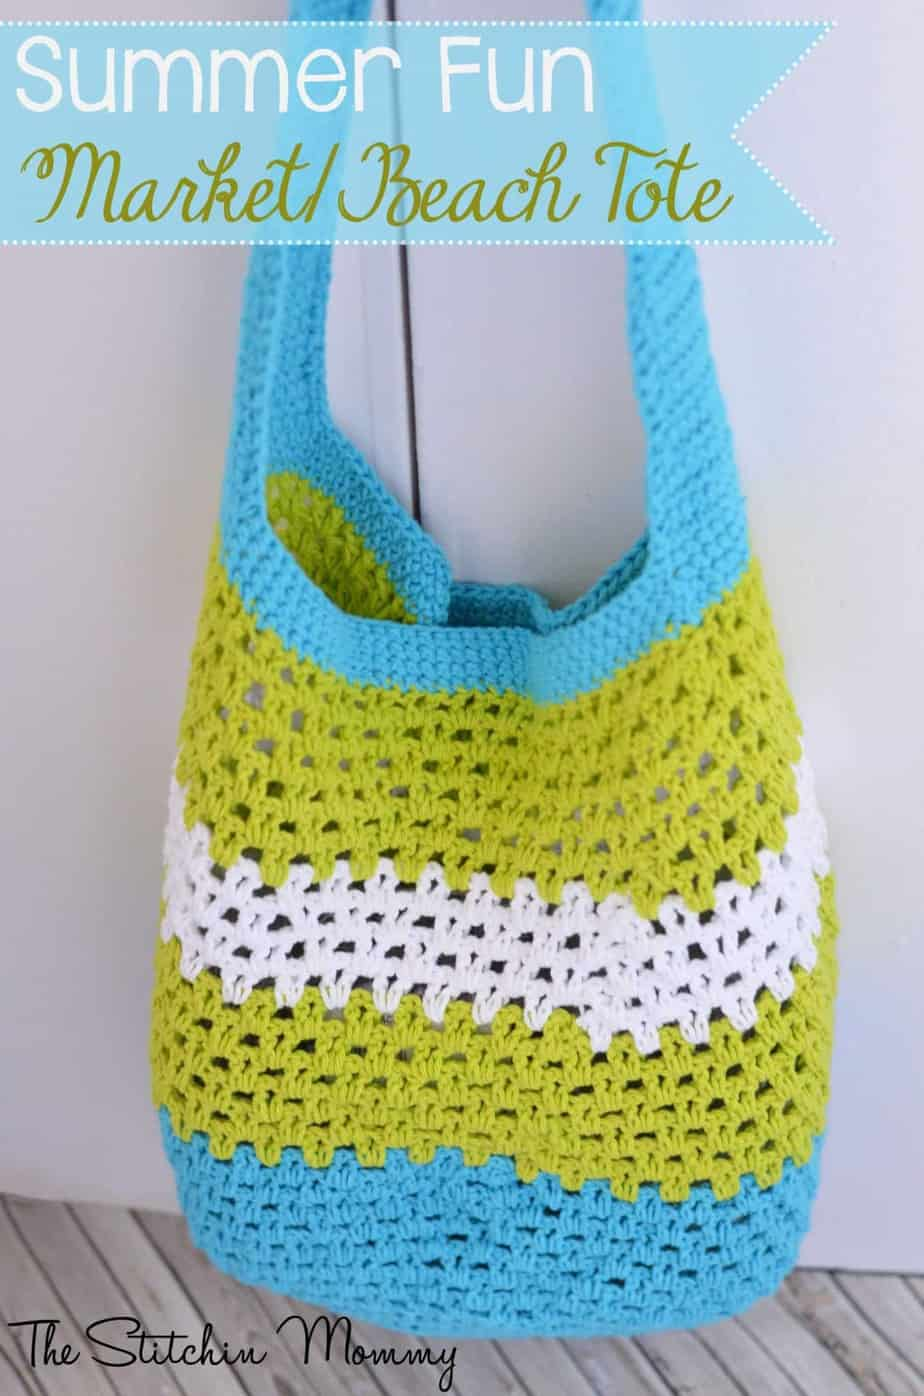 Summer Fun Market Beach Tote by The Stitchin Mommy